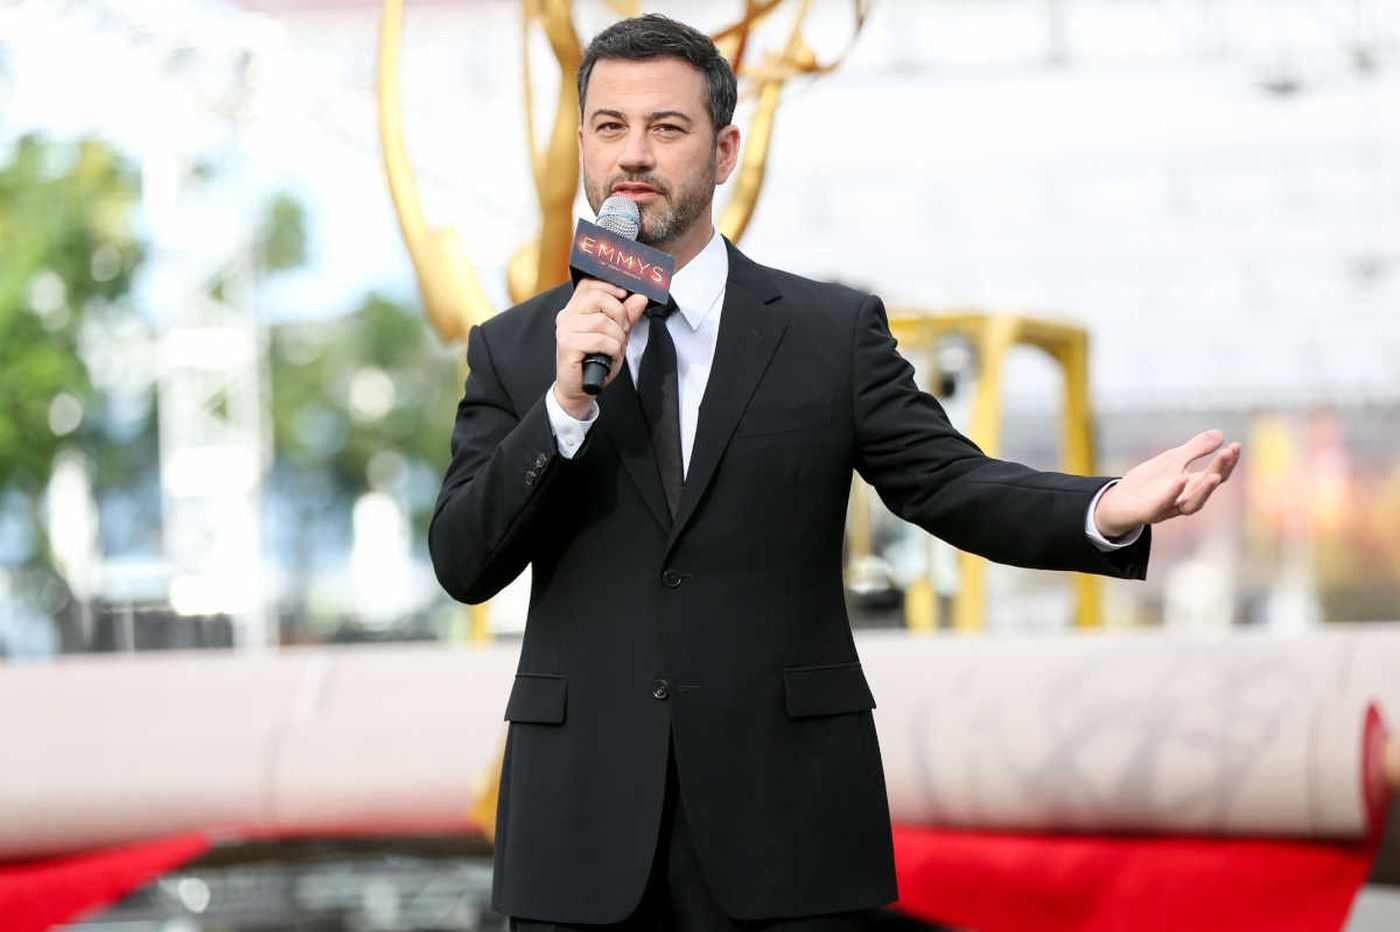 TV picks: Kimmel tackles the Oscars, NBC adds 'Chicago Justice,' Jay Z brings 'Kalief Browder' to Spike